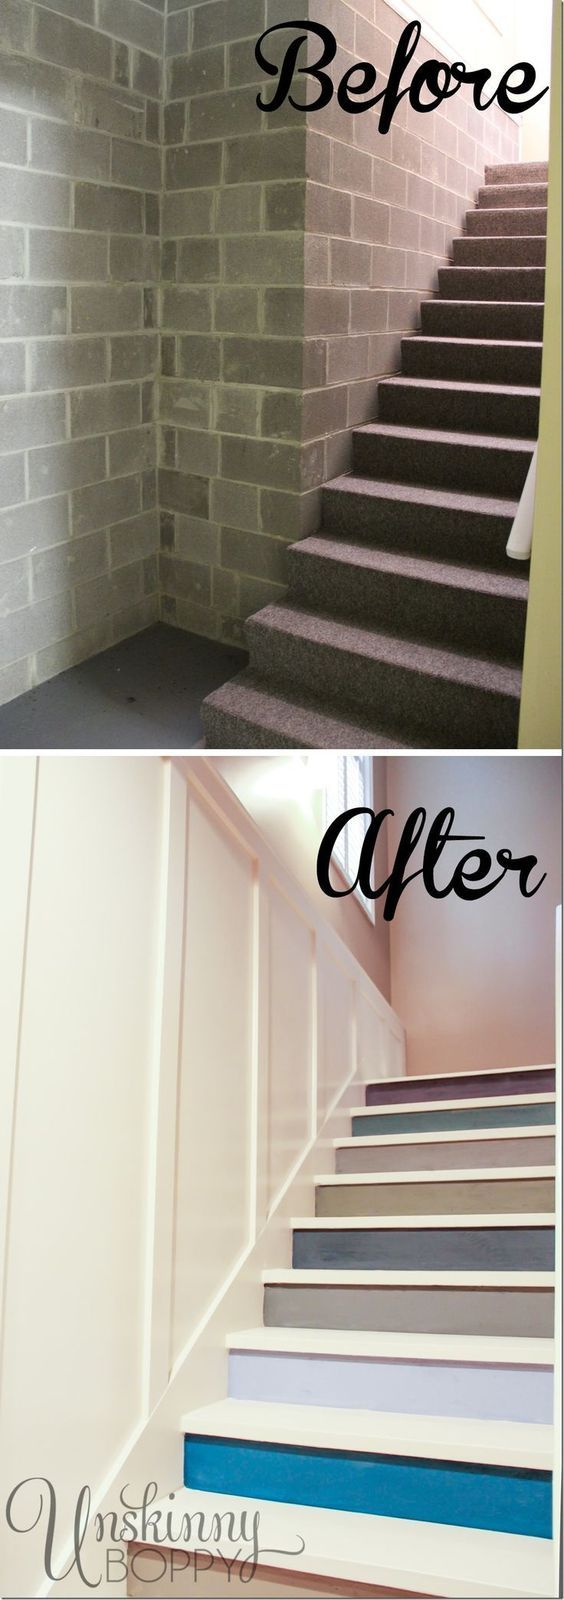 Painted Wood Stairs Best 20 Basement Steps Ideas On Pinterest Basement Finishing